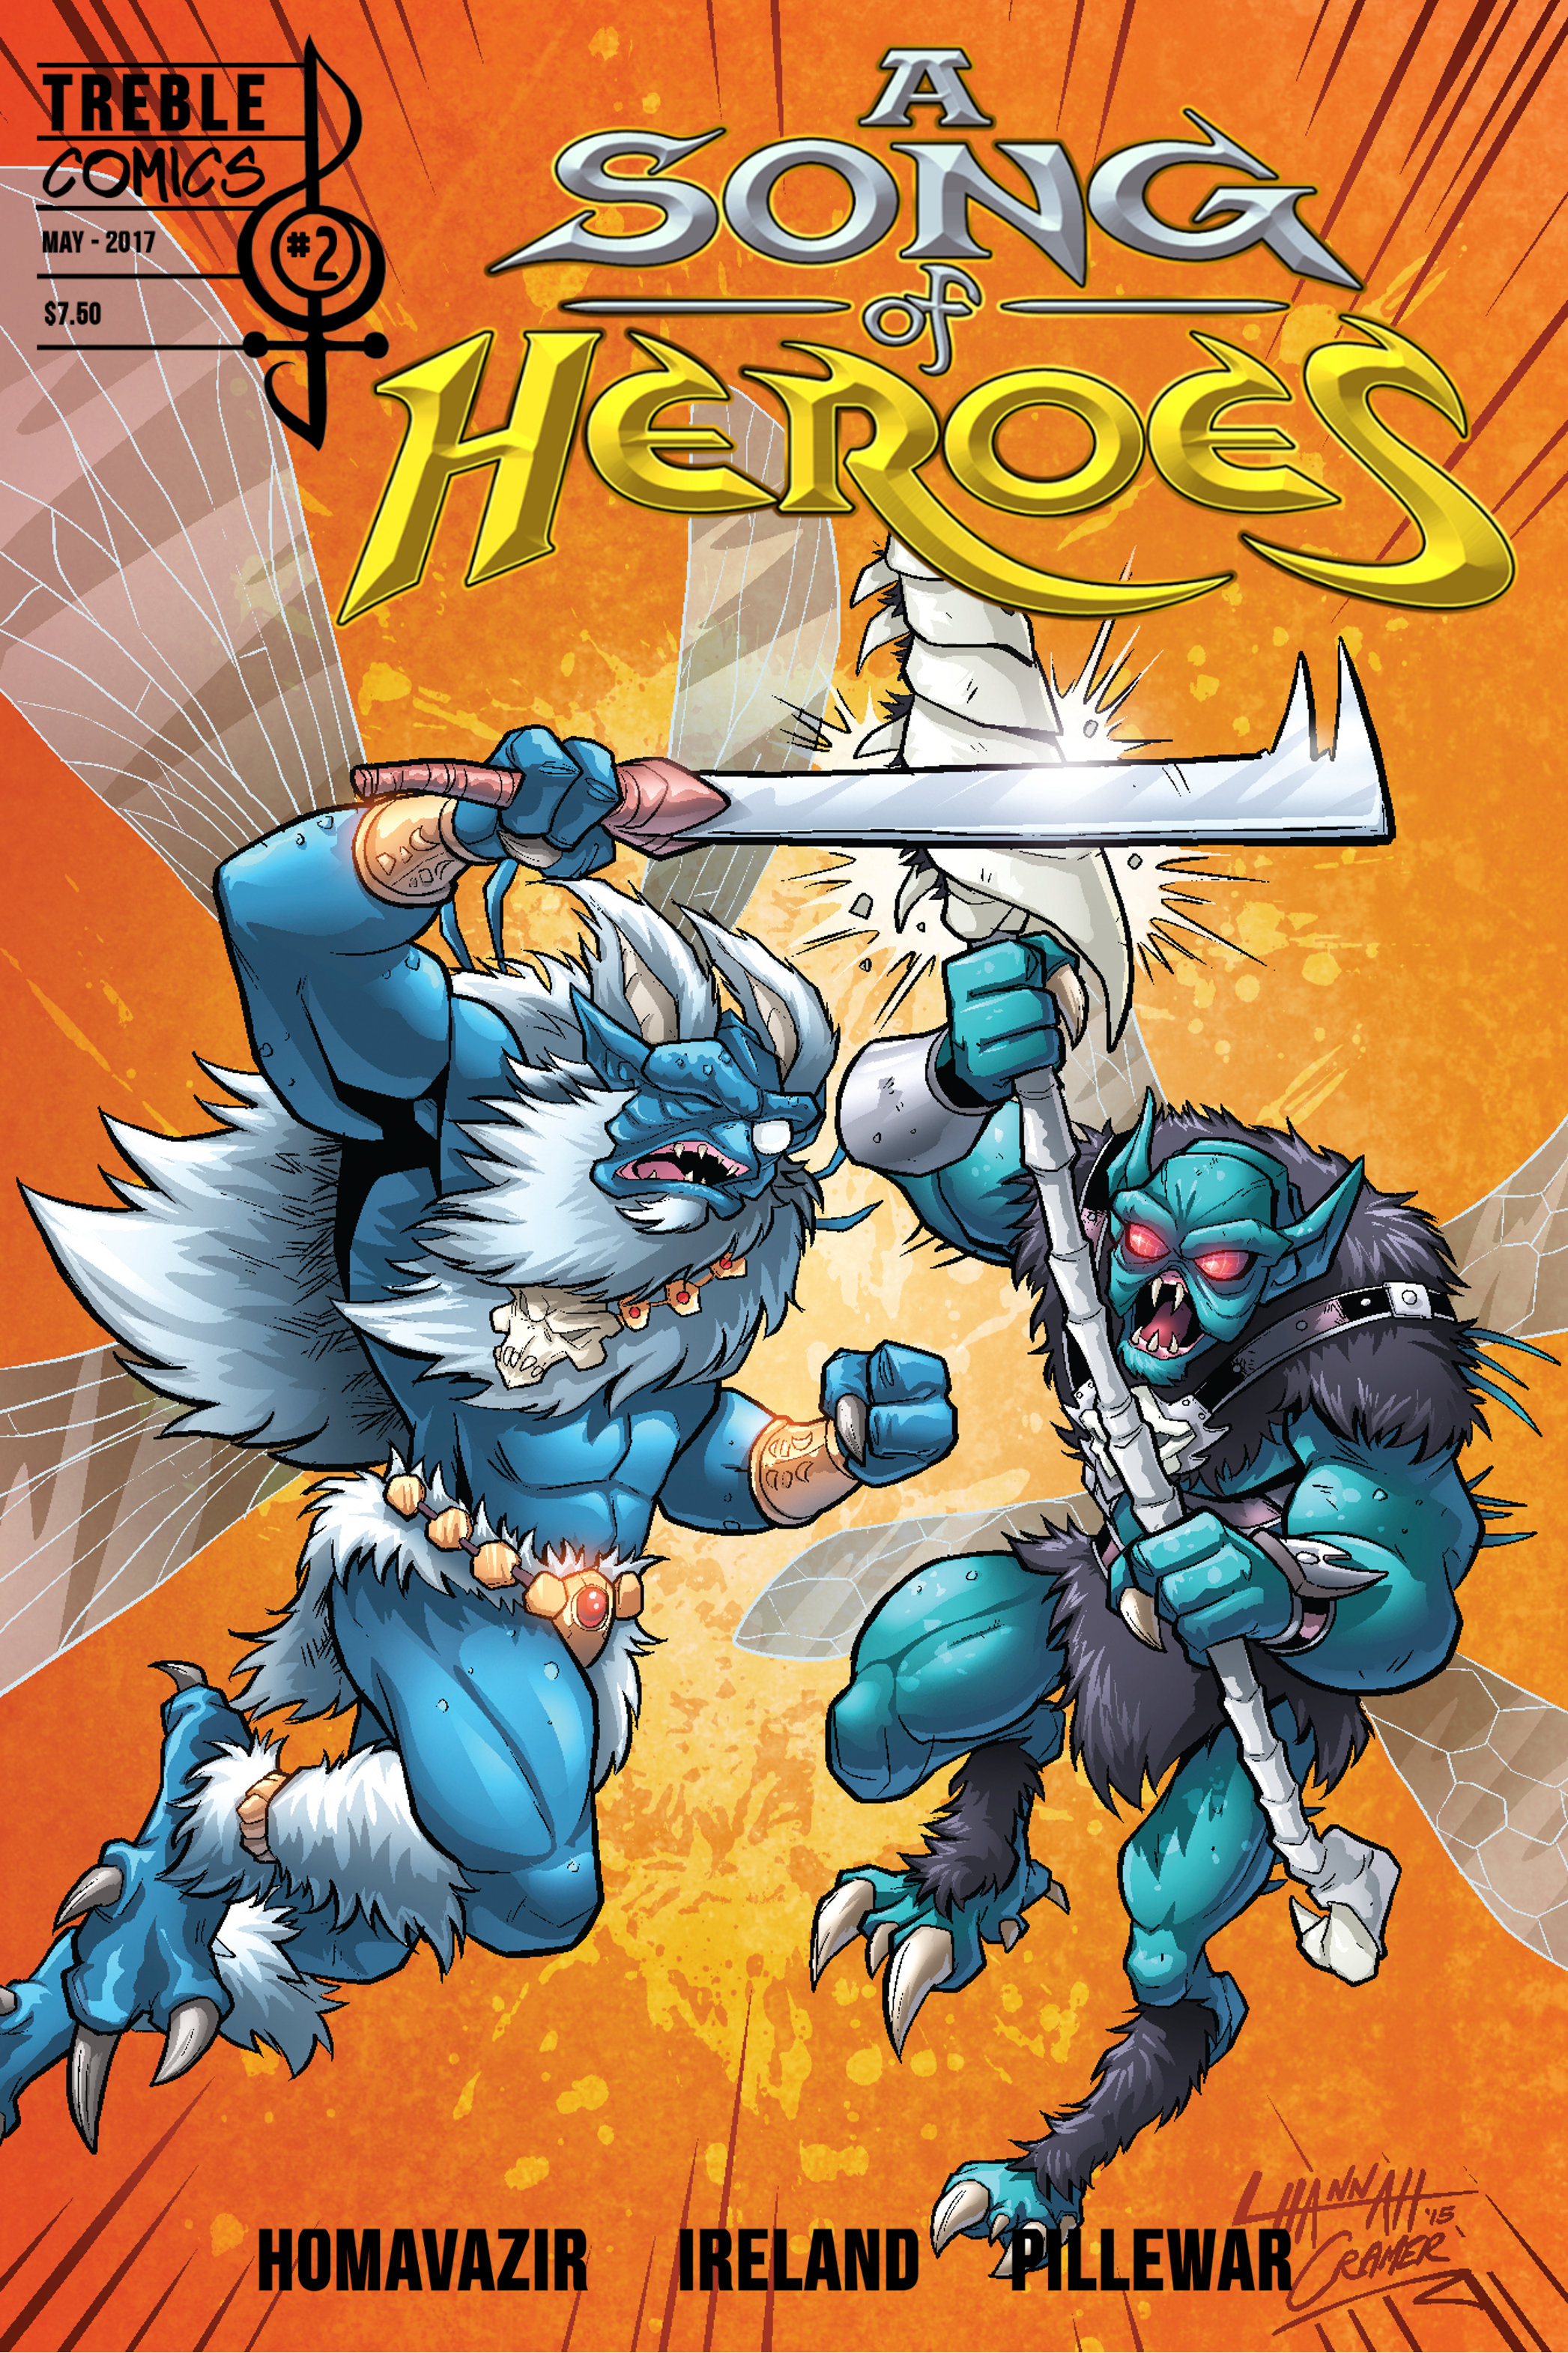 A Song of Heroes Issue 2 ASOH002